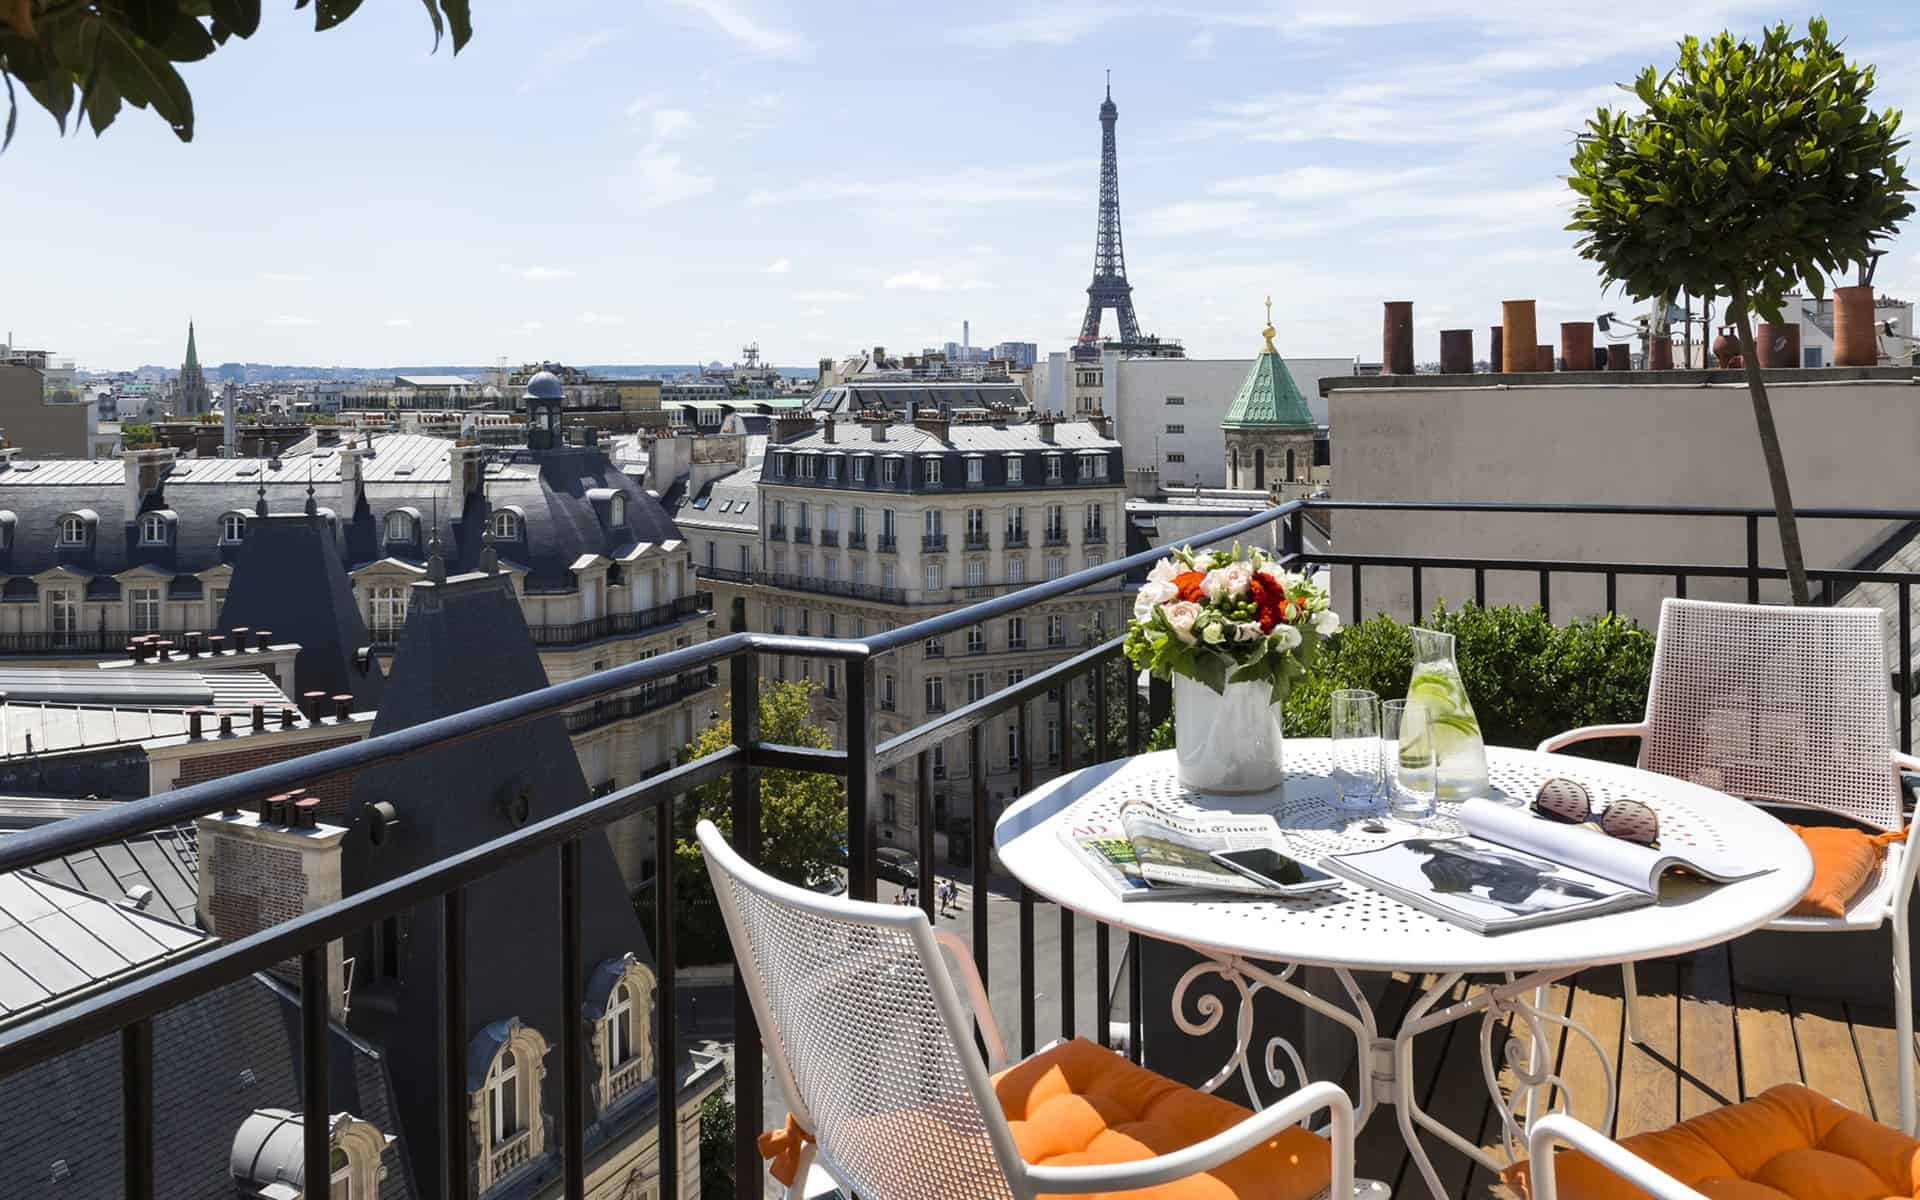 Hôtel San Régis is one of the hotels in Paris with Eiffel Tower Views and is in an mansion